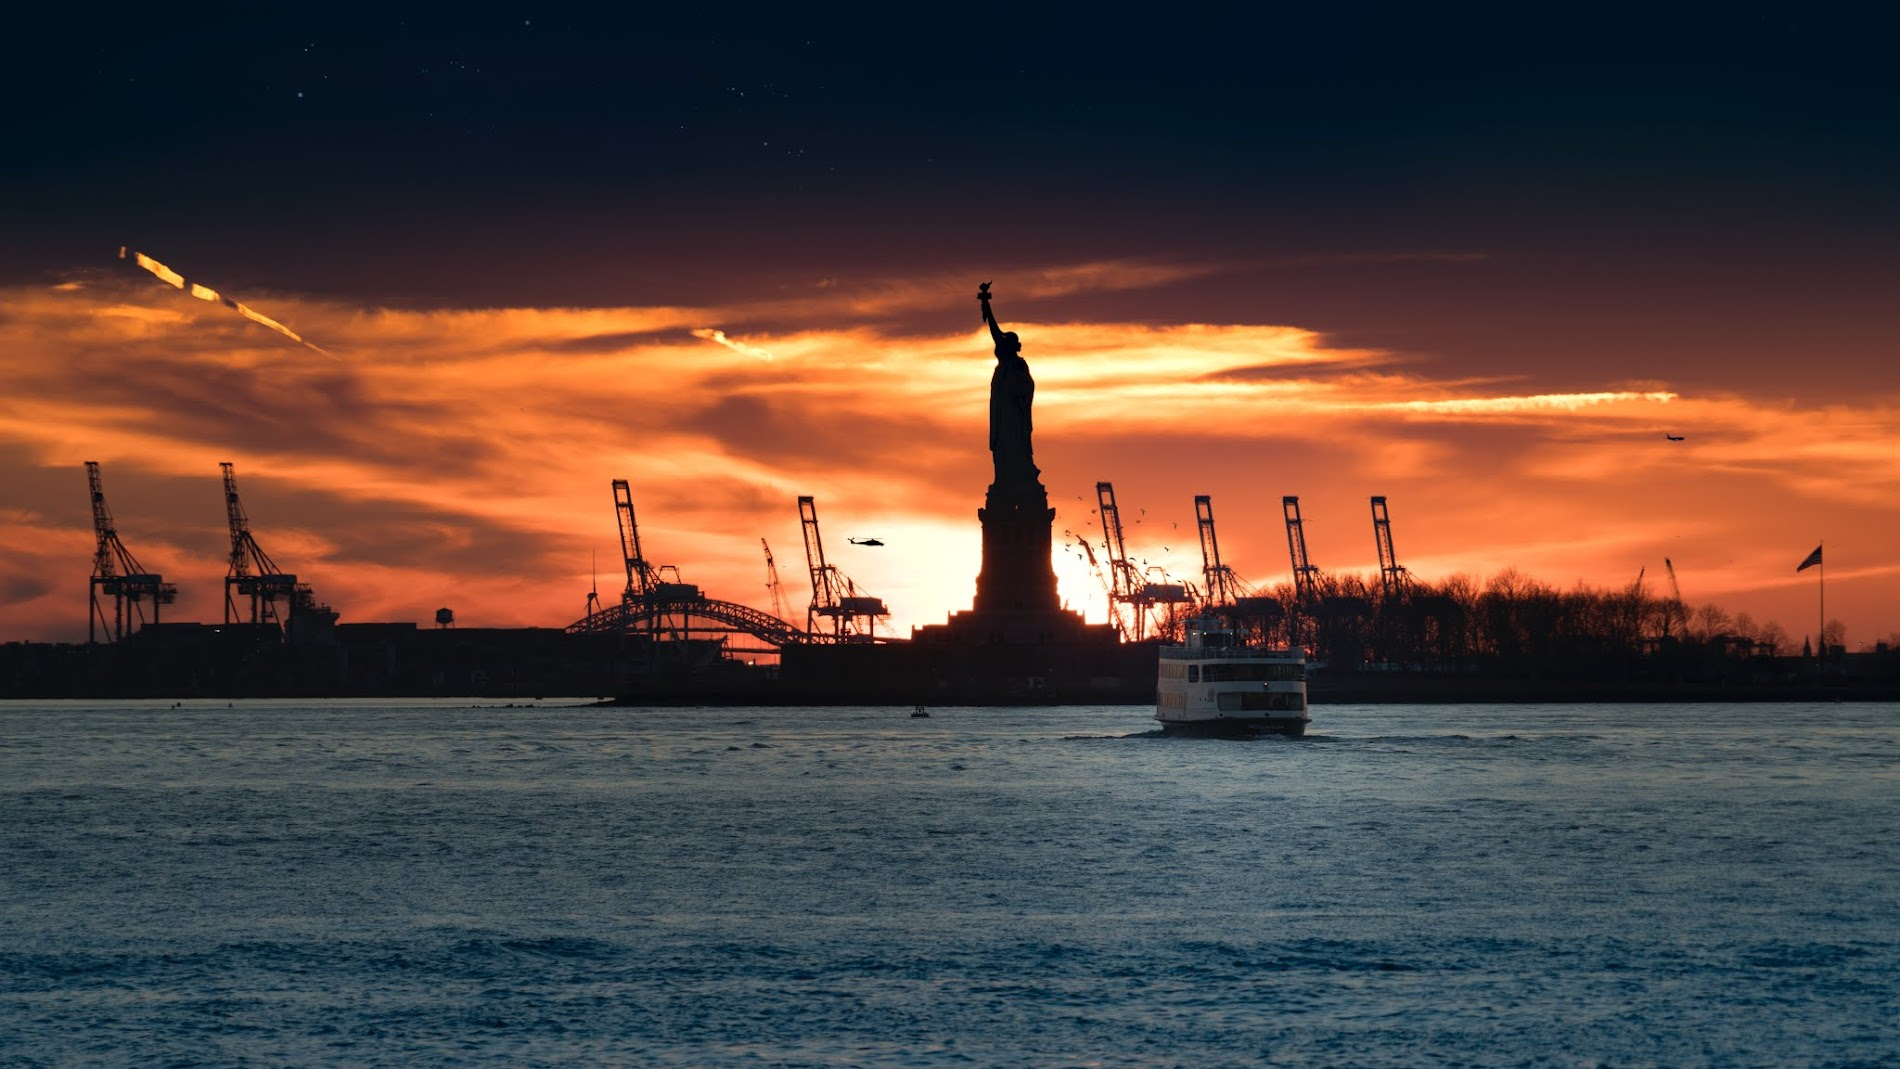 Statue of Liberty during sunset